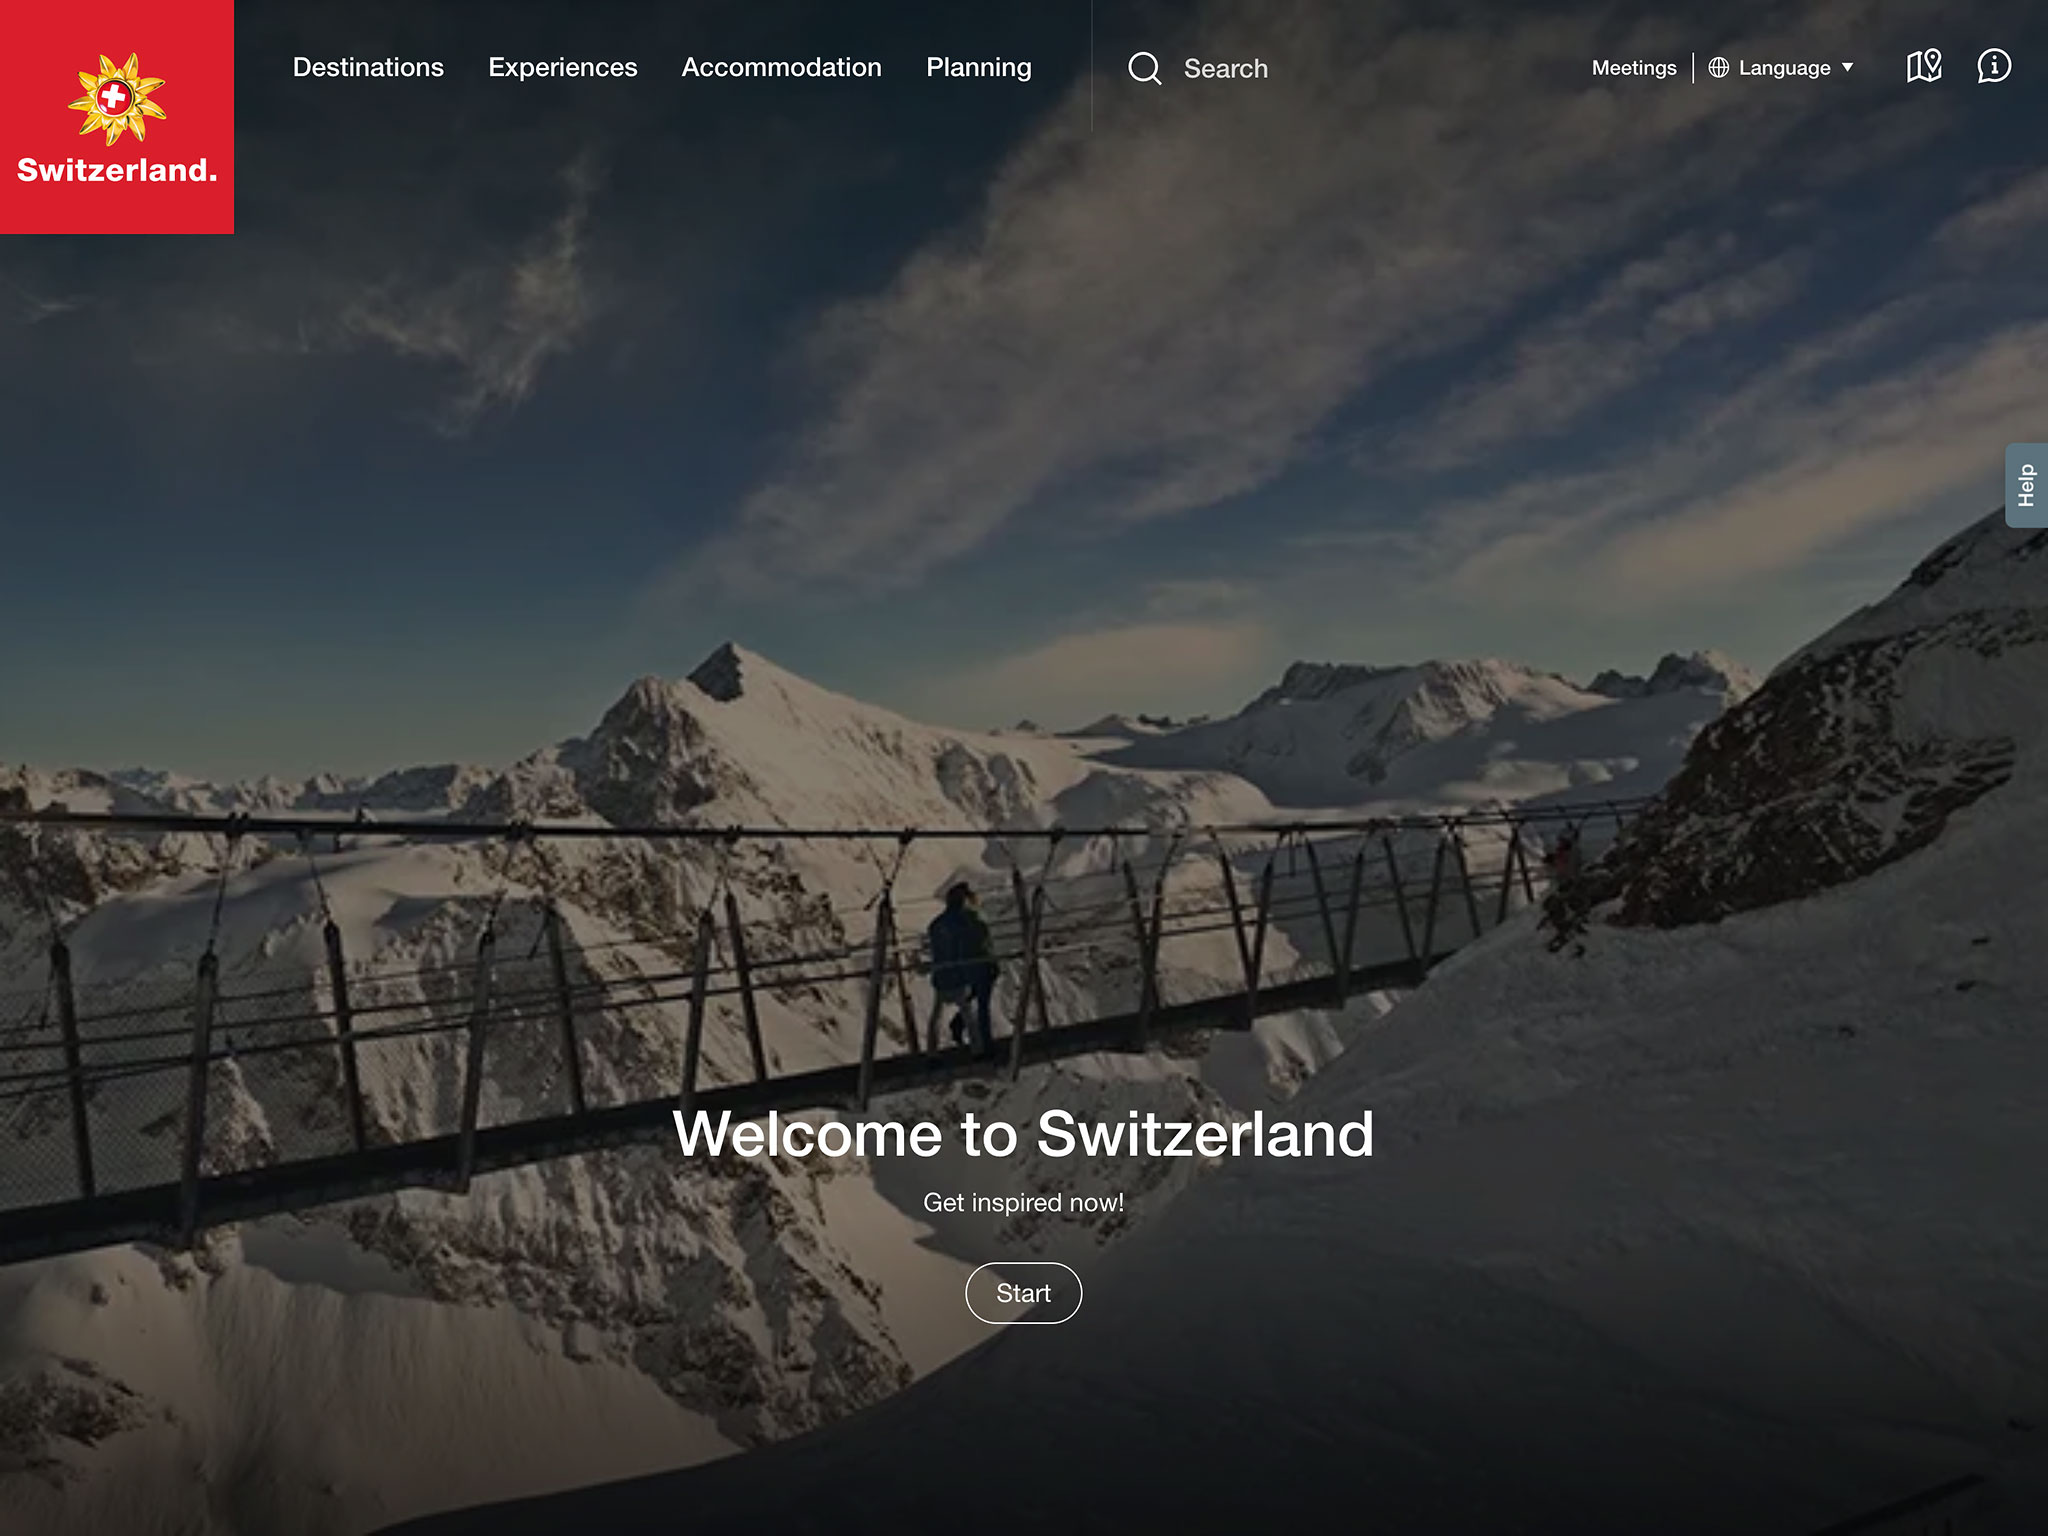 Vacation, Holiday, Travel, Meetings | Switzerland Tourism